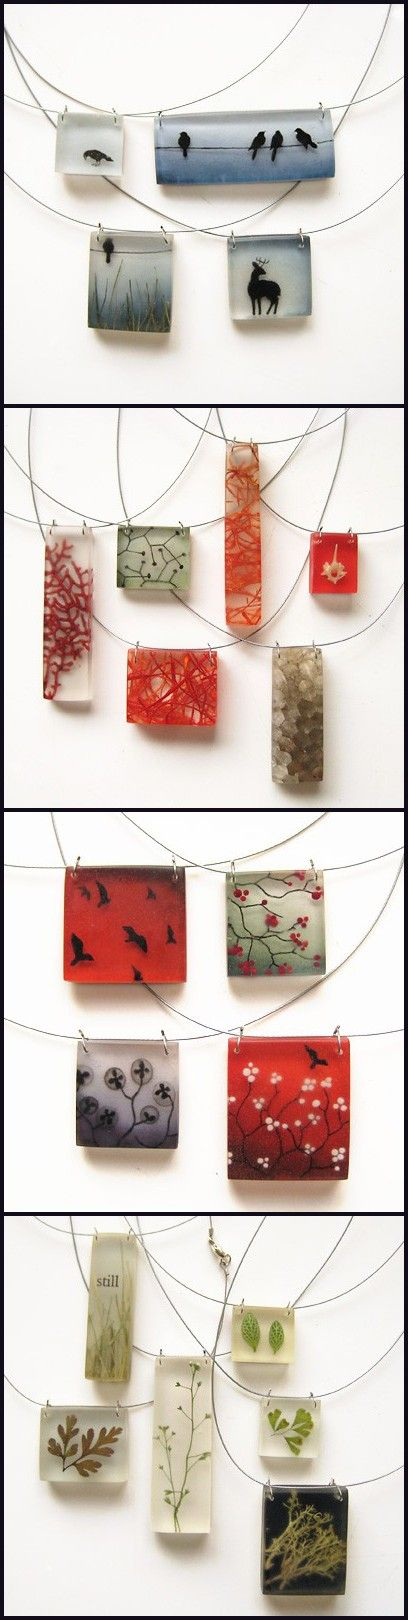 resin pendants. designs could be drawn on shrinky dinks and possibly recreated.